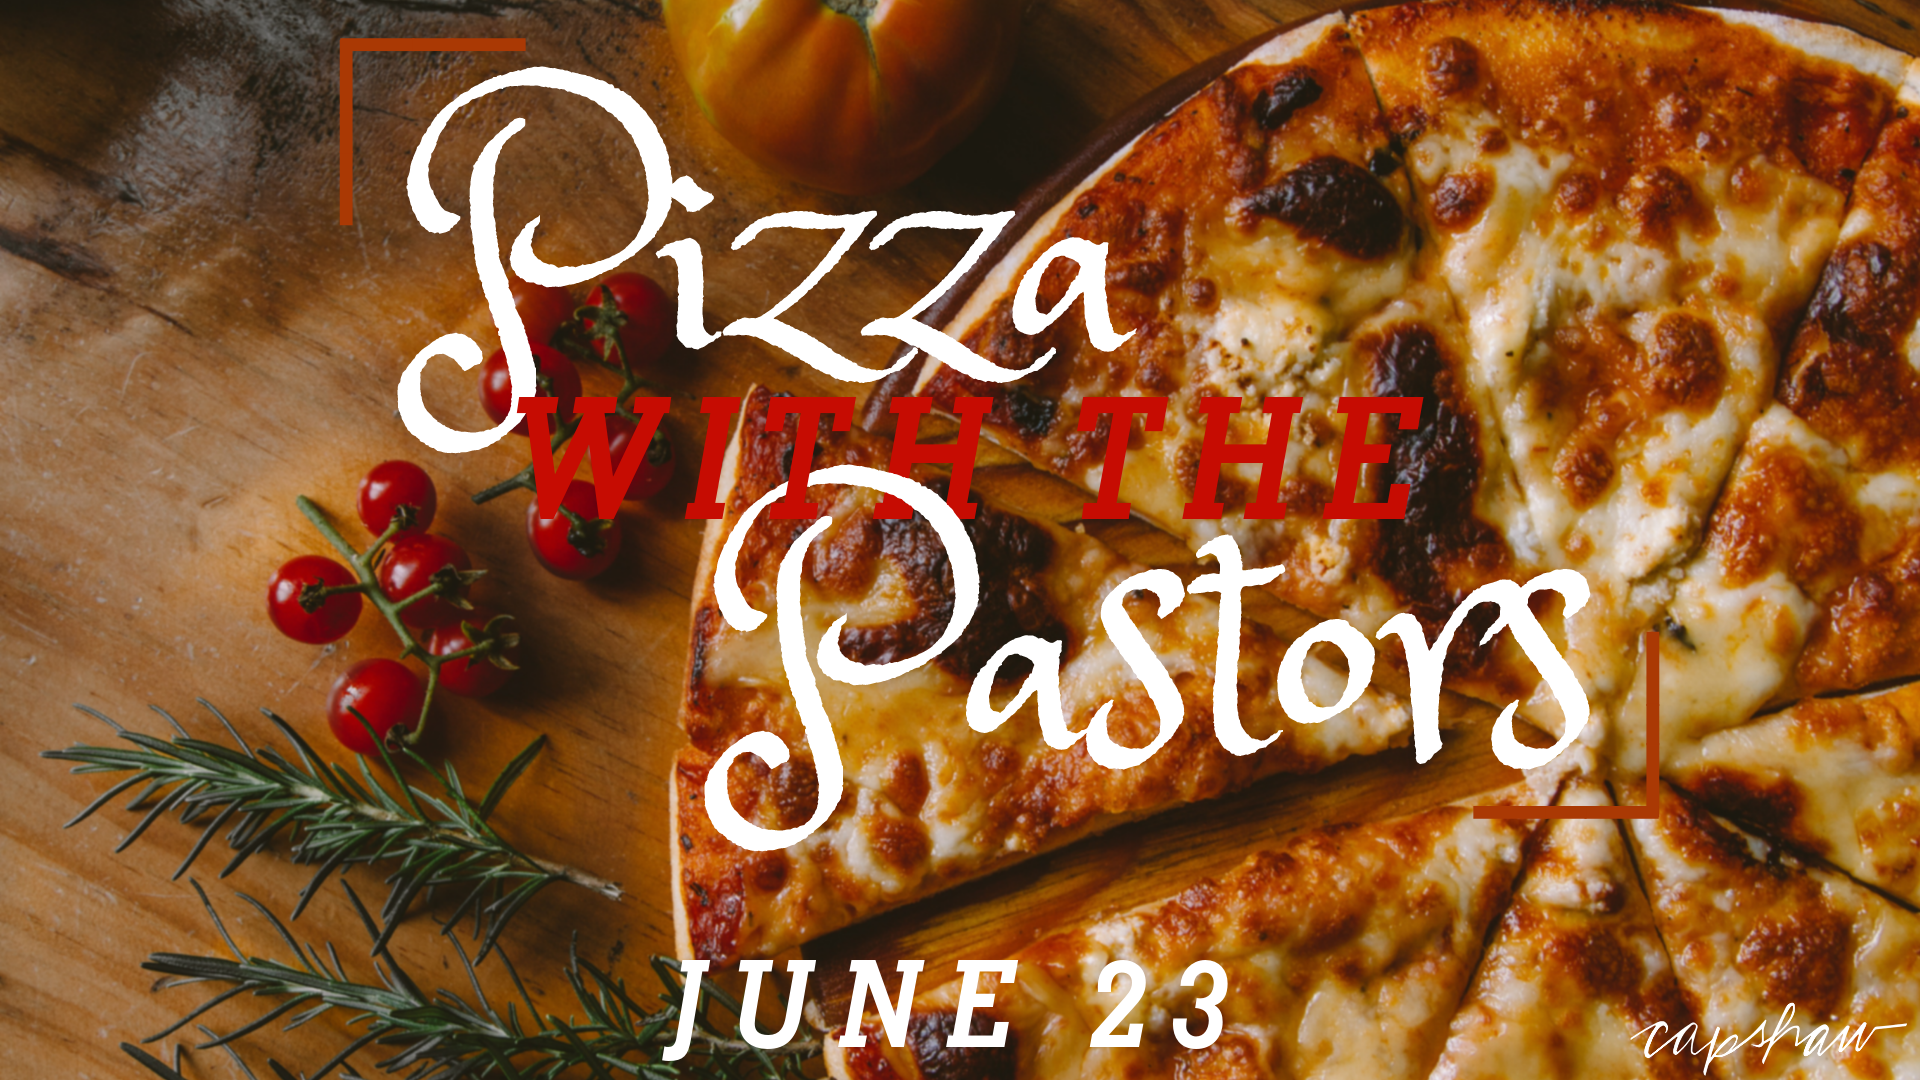 Pizza with the Pastors June 23.png